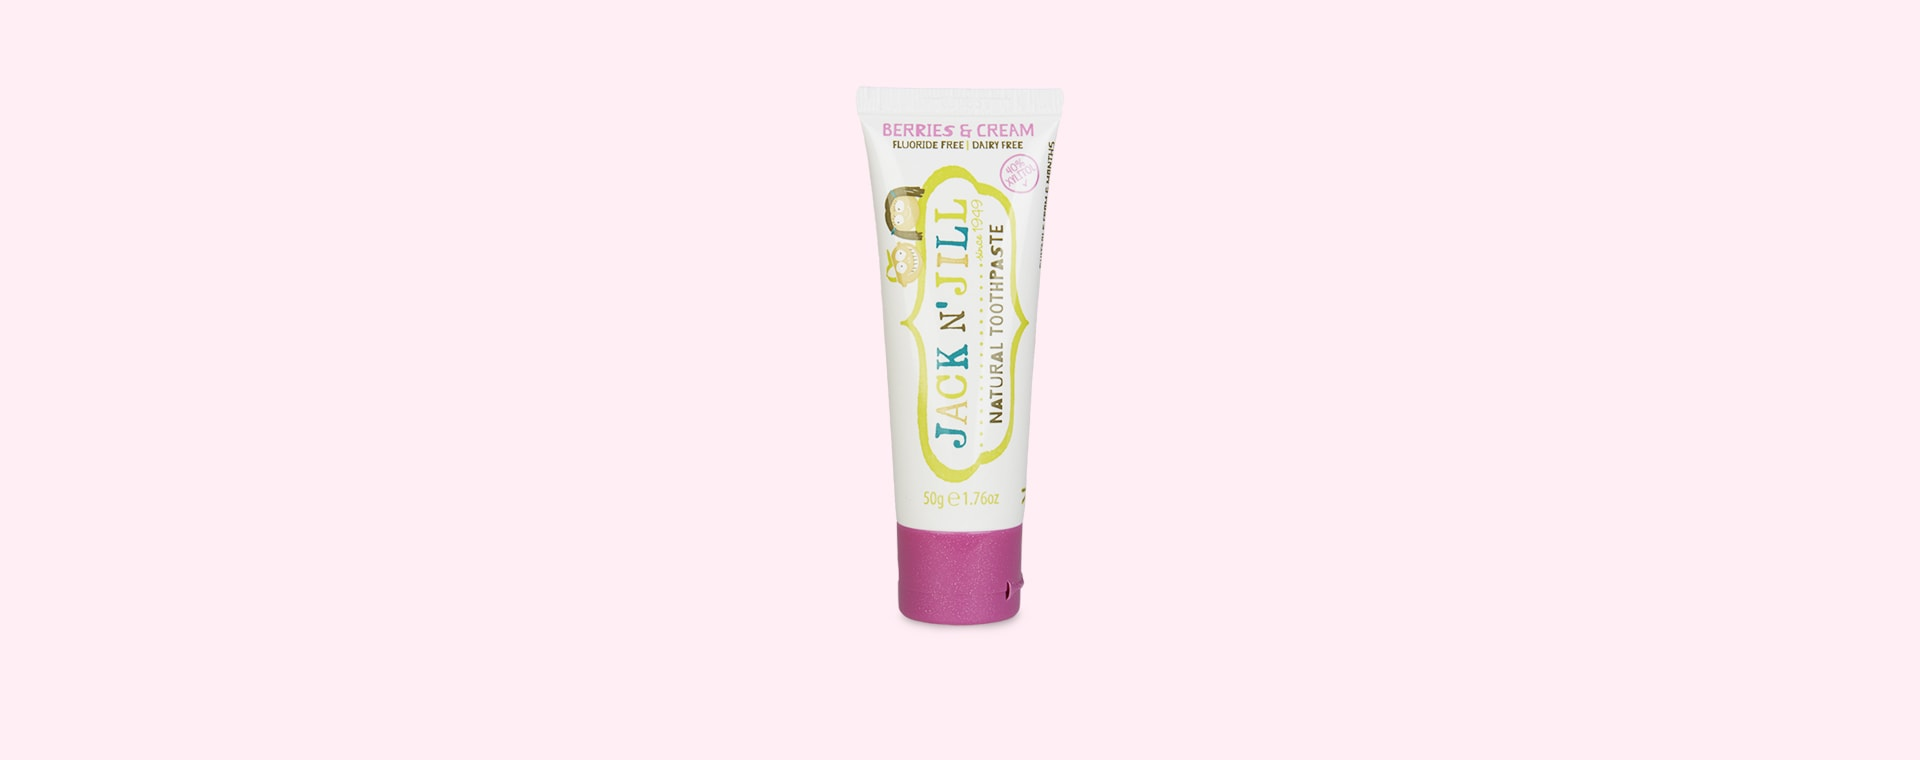 Berries & Cream JACK N' JILL Organic Flavoured Toothpaste